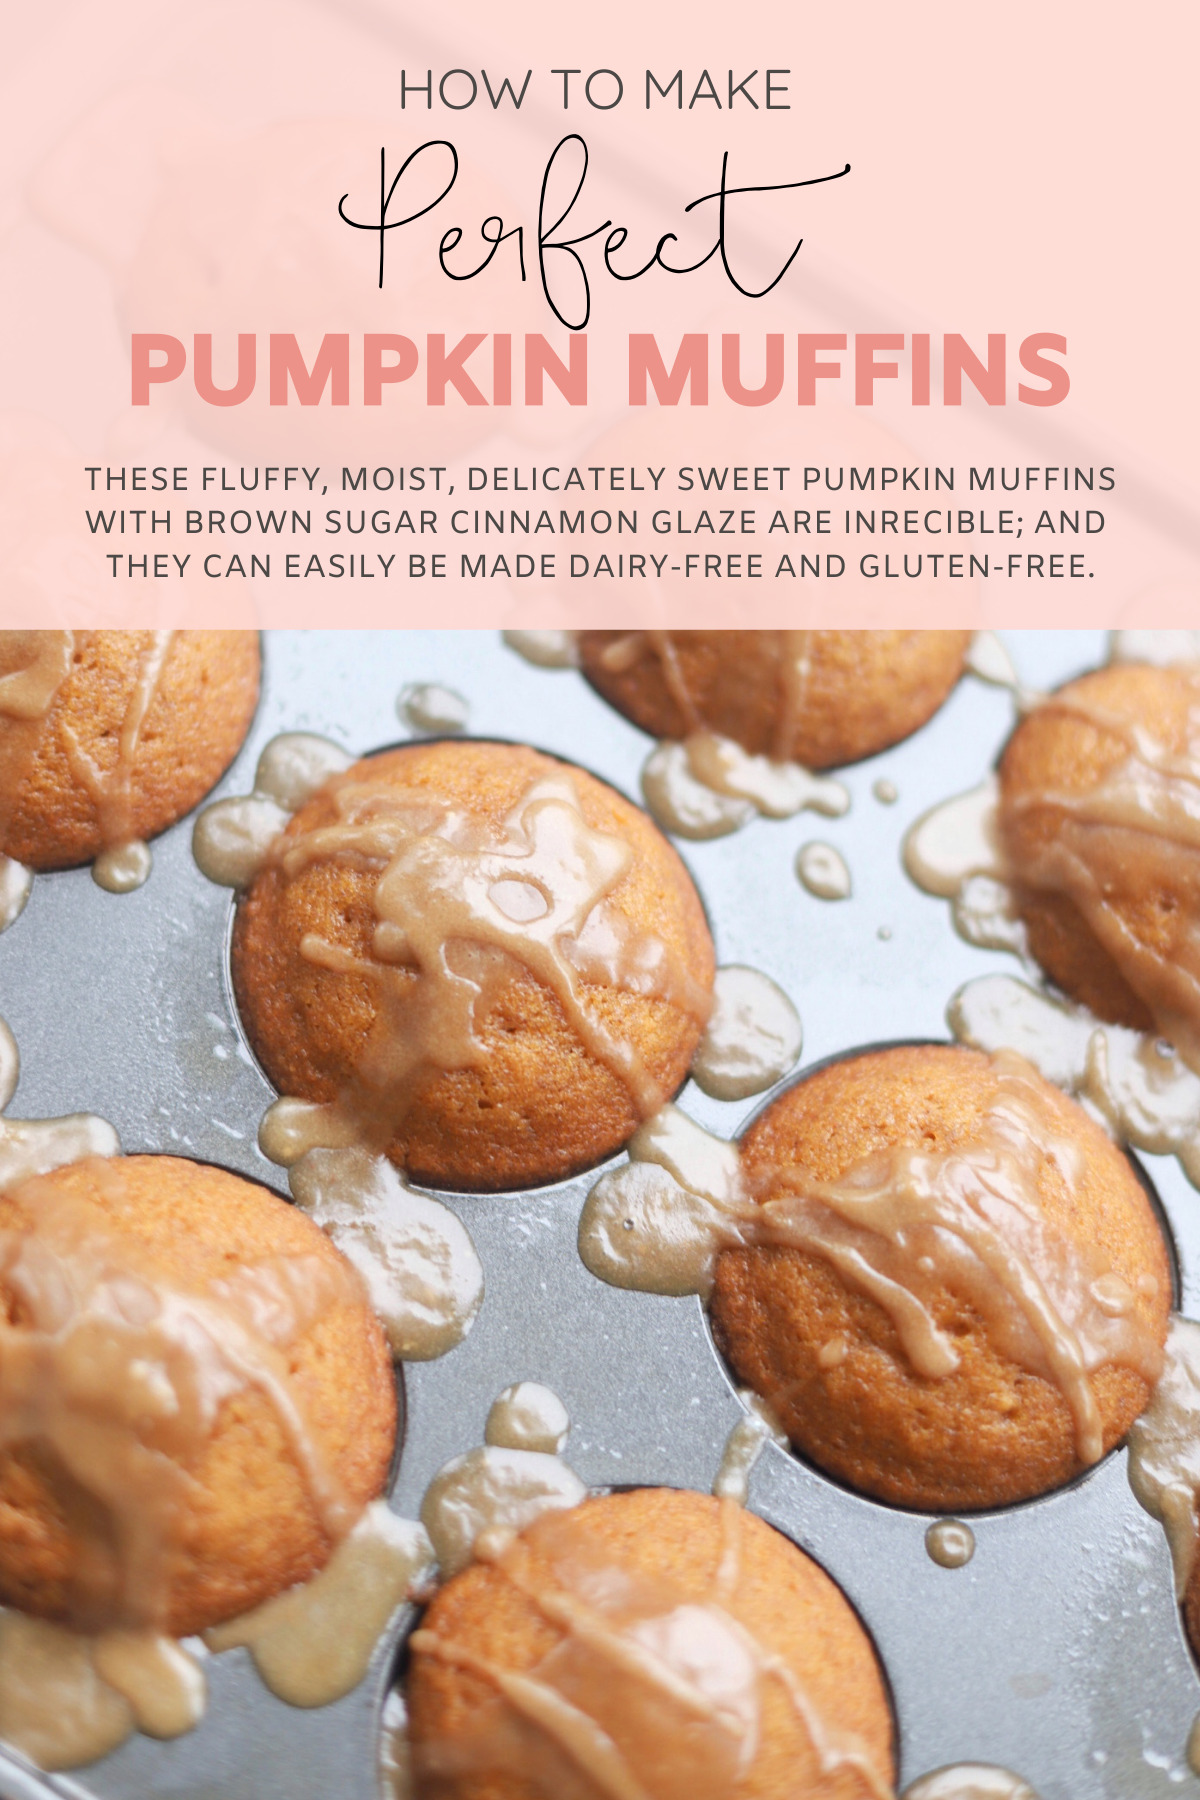 Say hello to the most incredible fluffy, moist, delicately sweet pumpkin muffins topped with my new favorite brown sugar cinnamon glaze. They can also easily be made dairy-free and gluten-free. | @glitterinclexi | GLITTERINC.COM